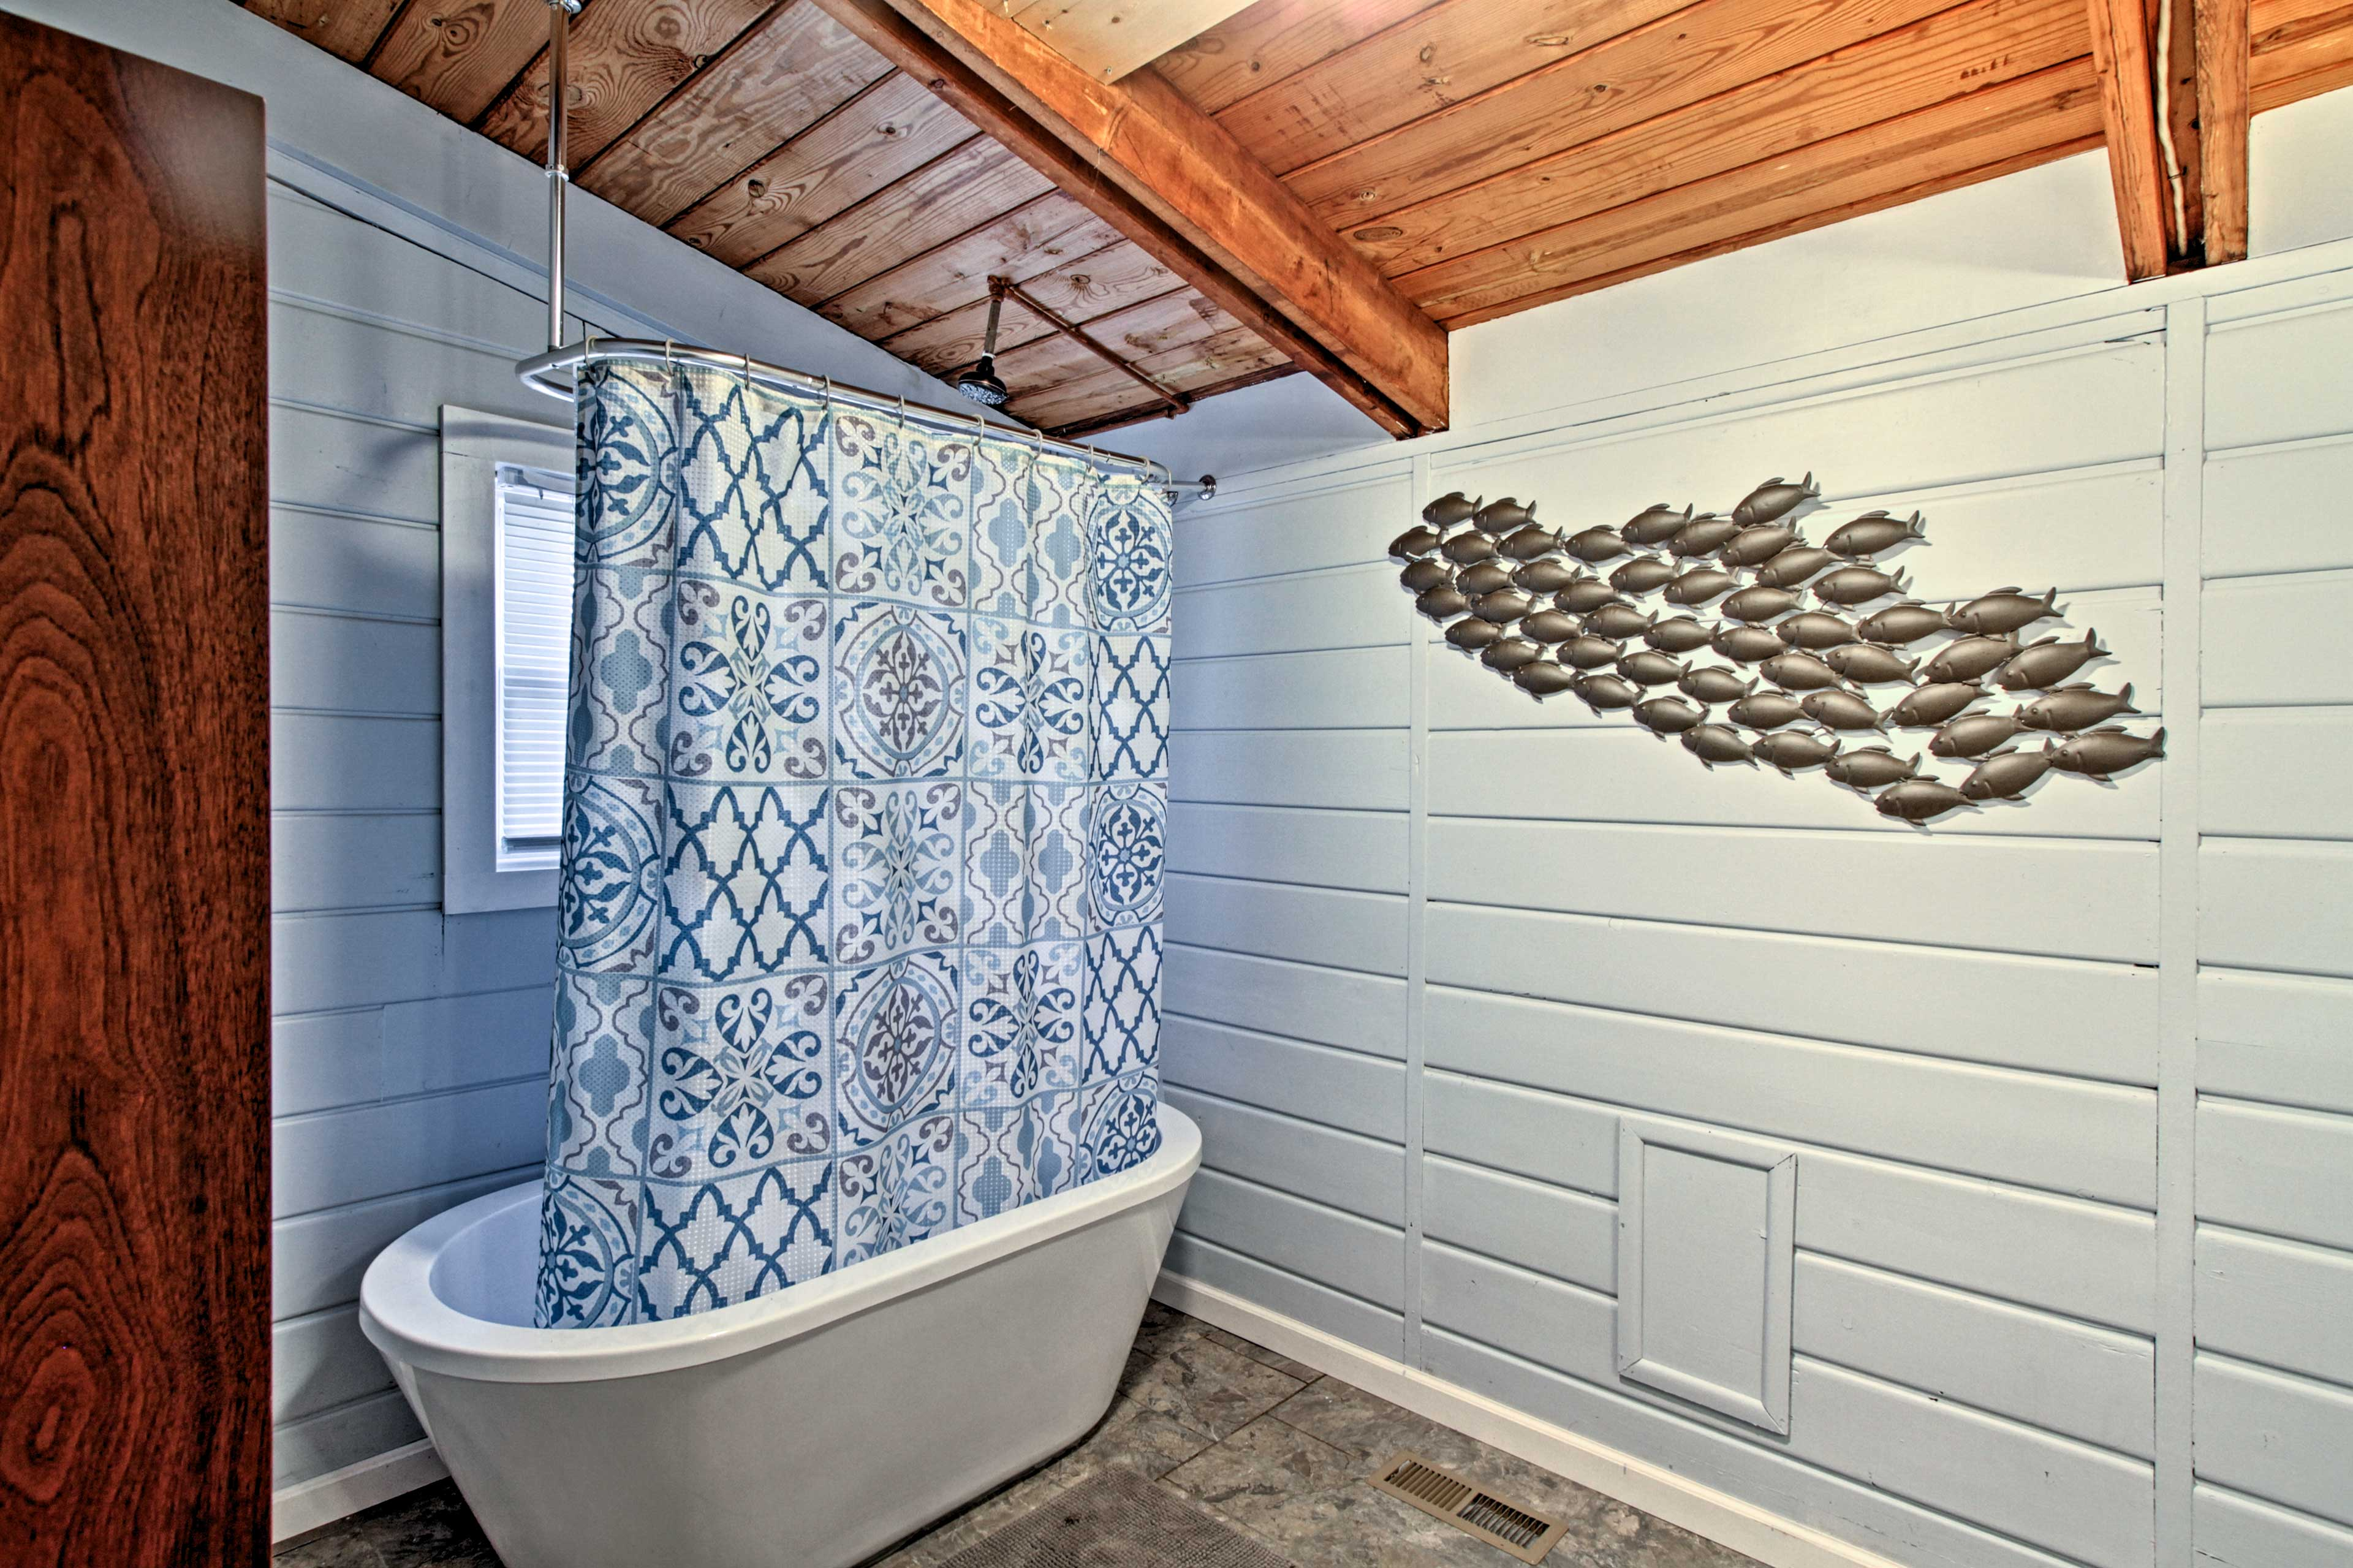 Take a long soak in the tub to relieve all your pent up stress.